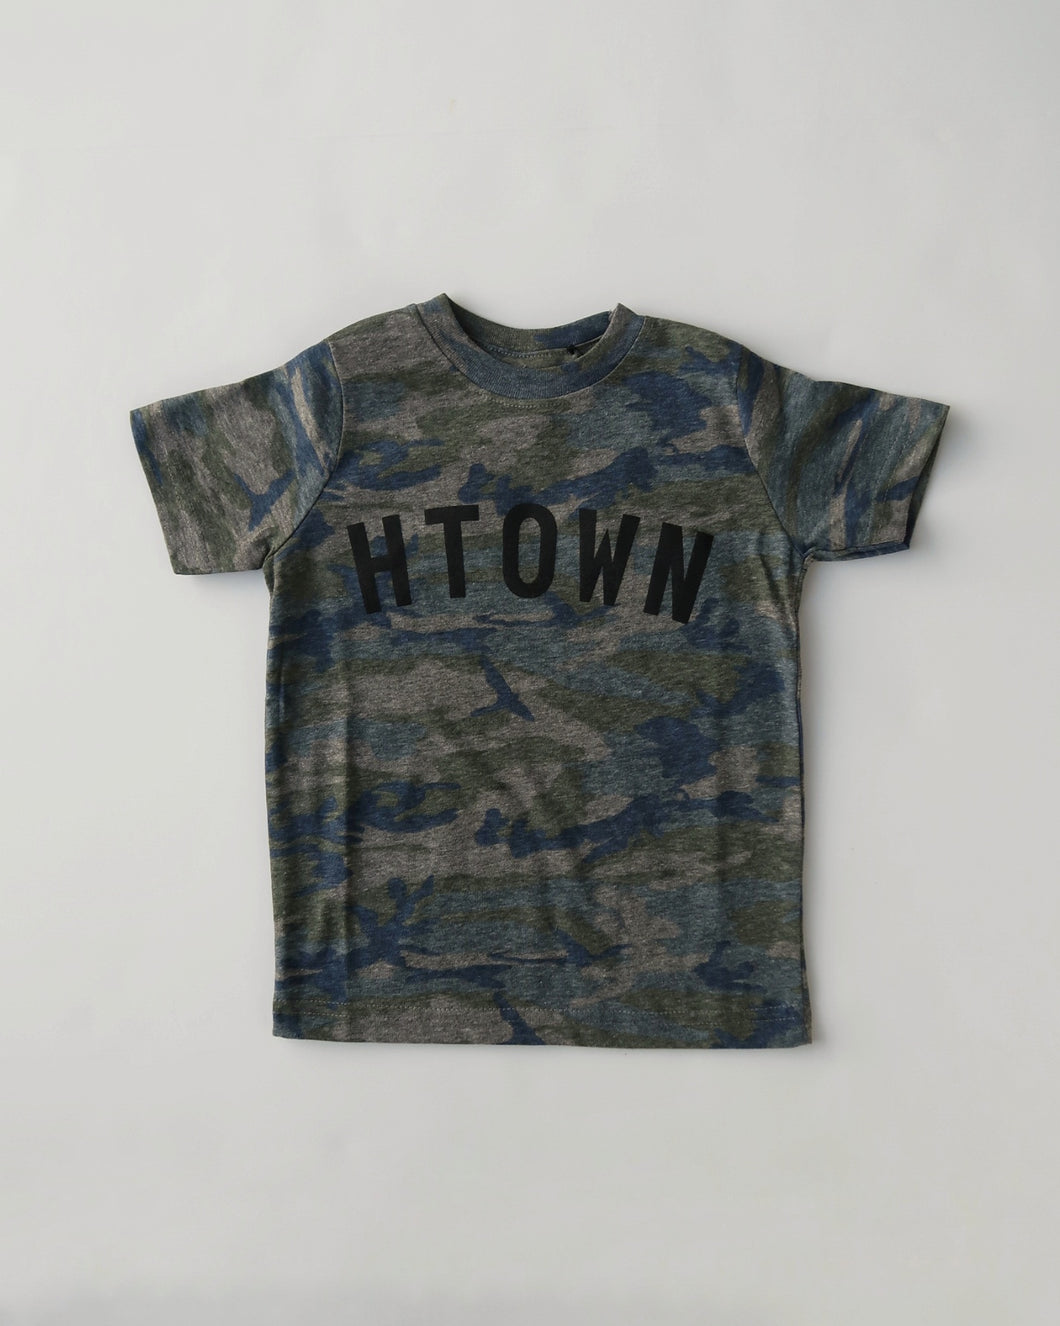 Toddler HTOWN Tee (Camo/Black)